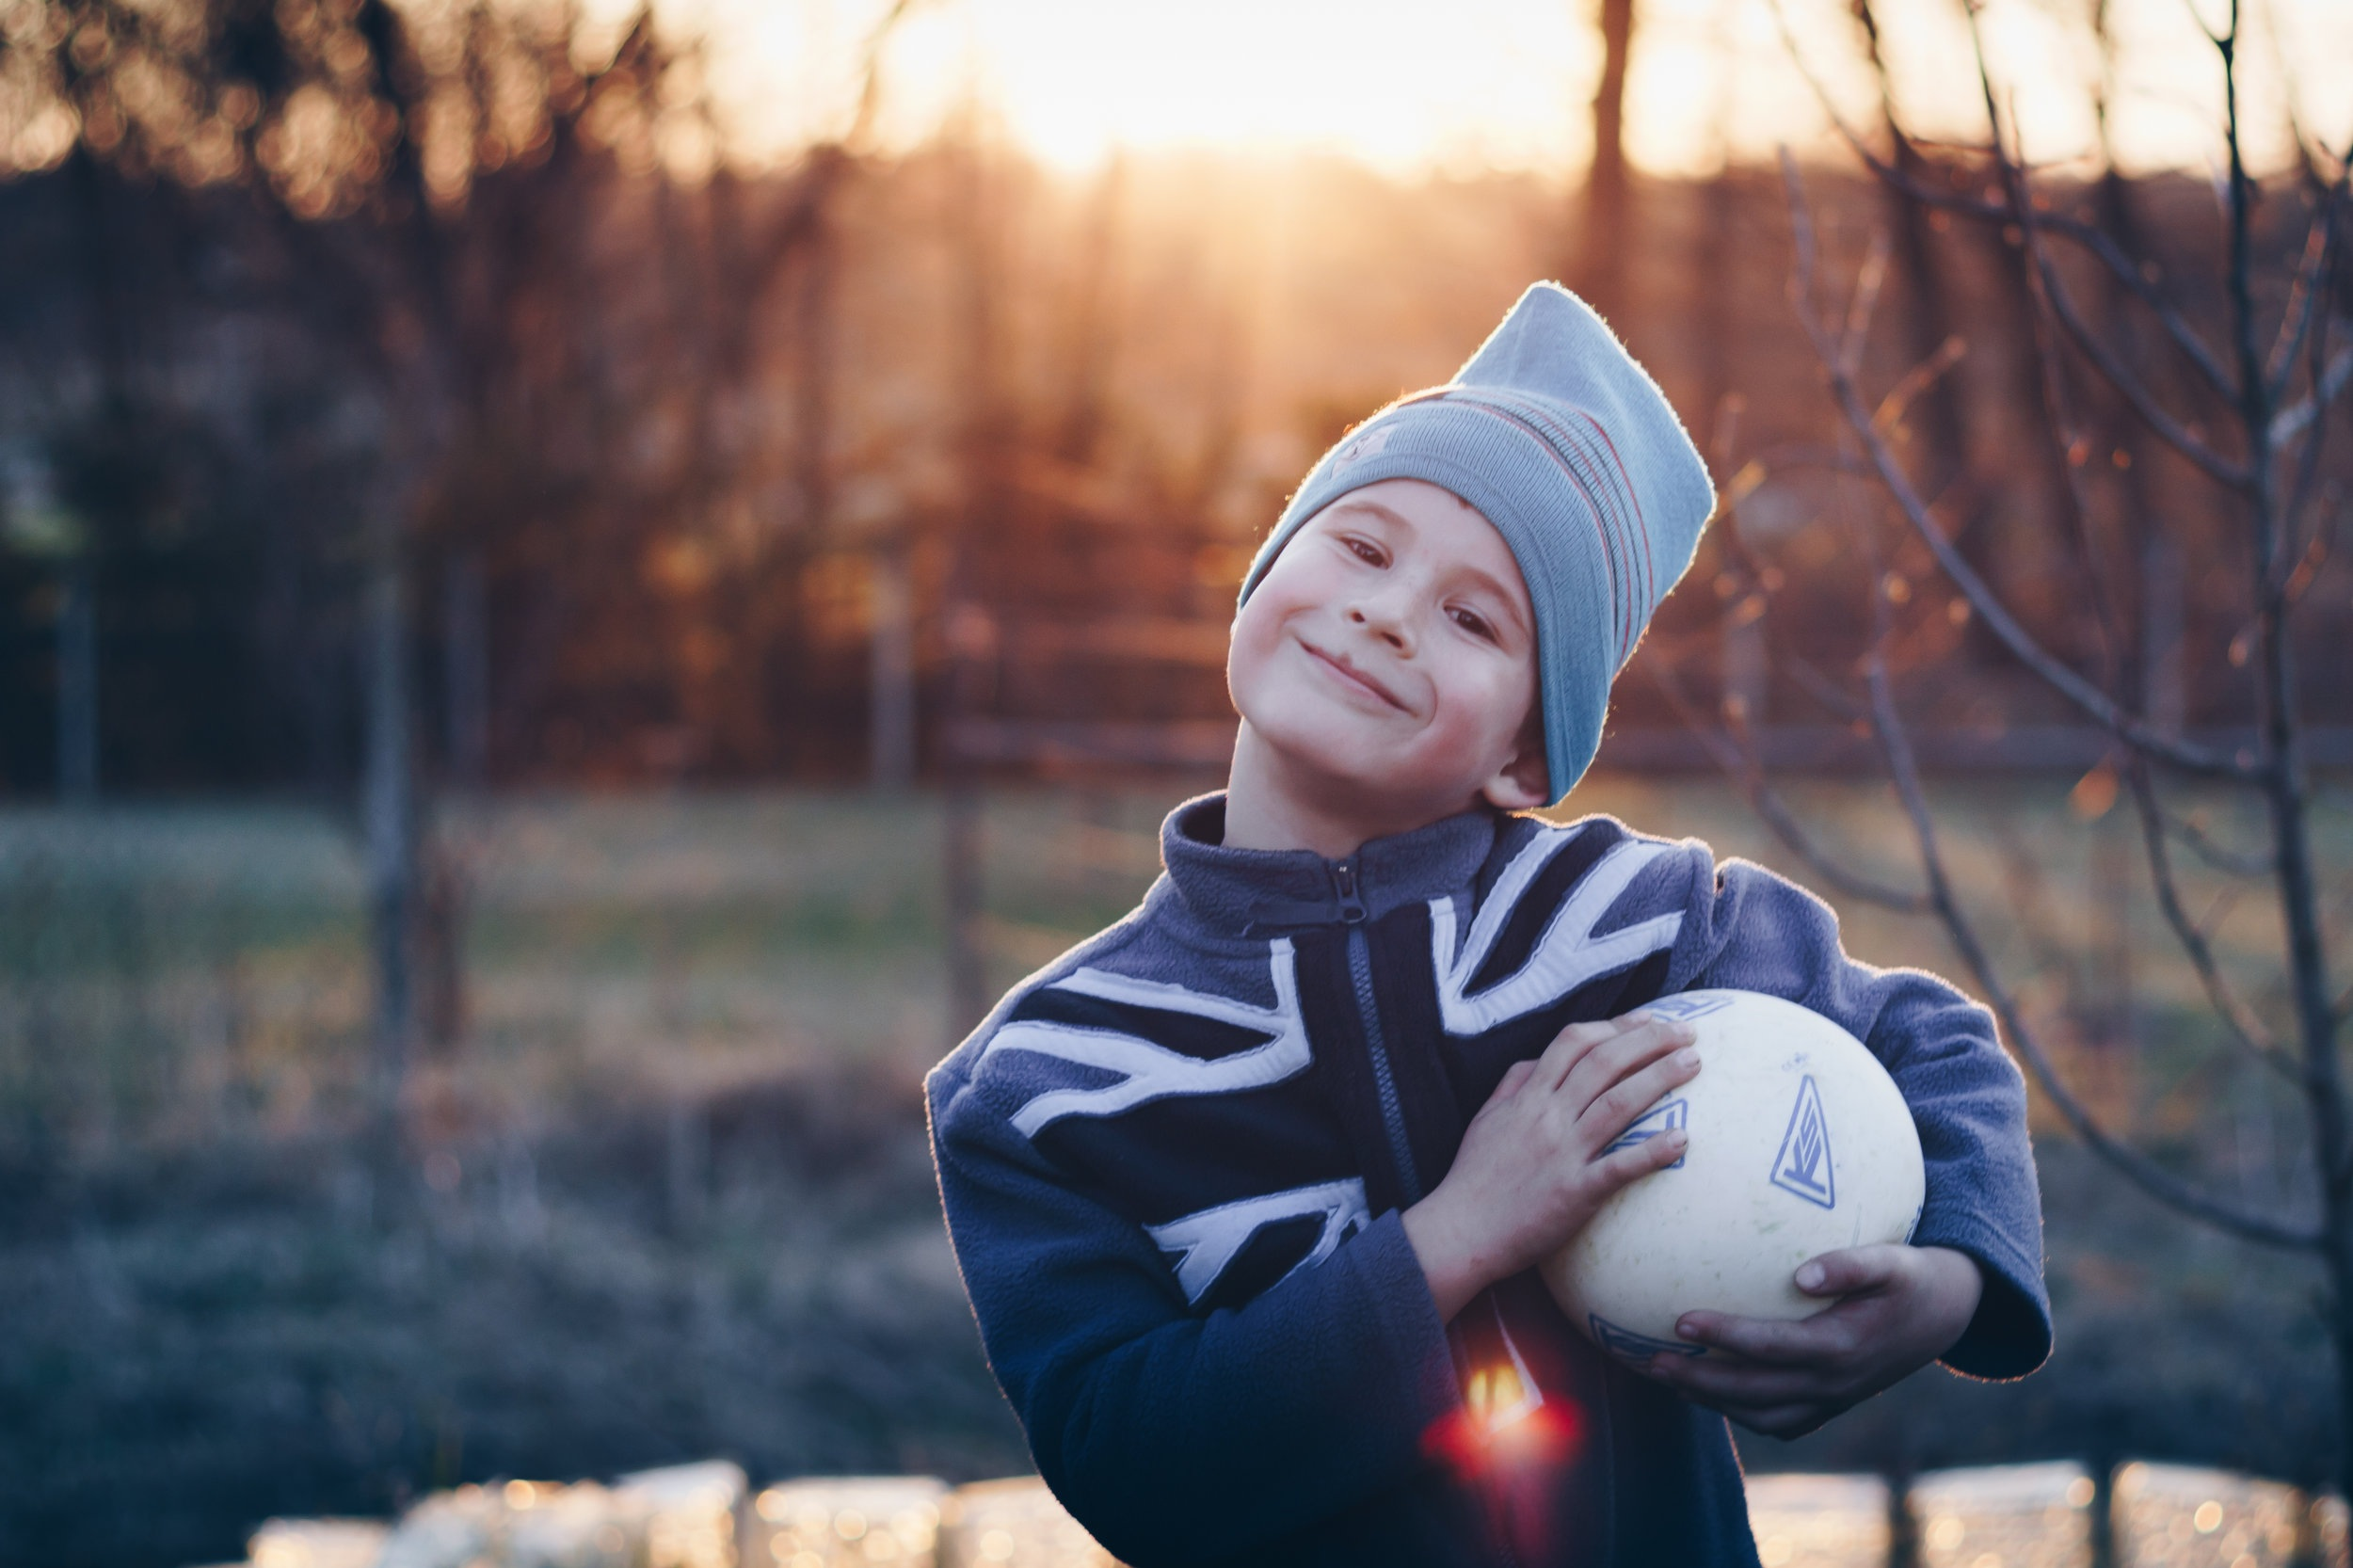 kid-happy-golden-sunset-ball-blur-1418357-pxhere.com.jpg